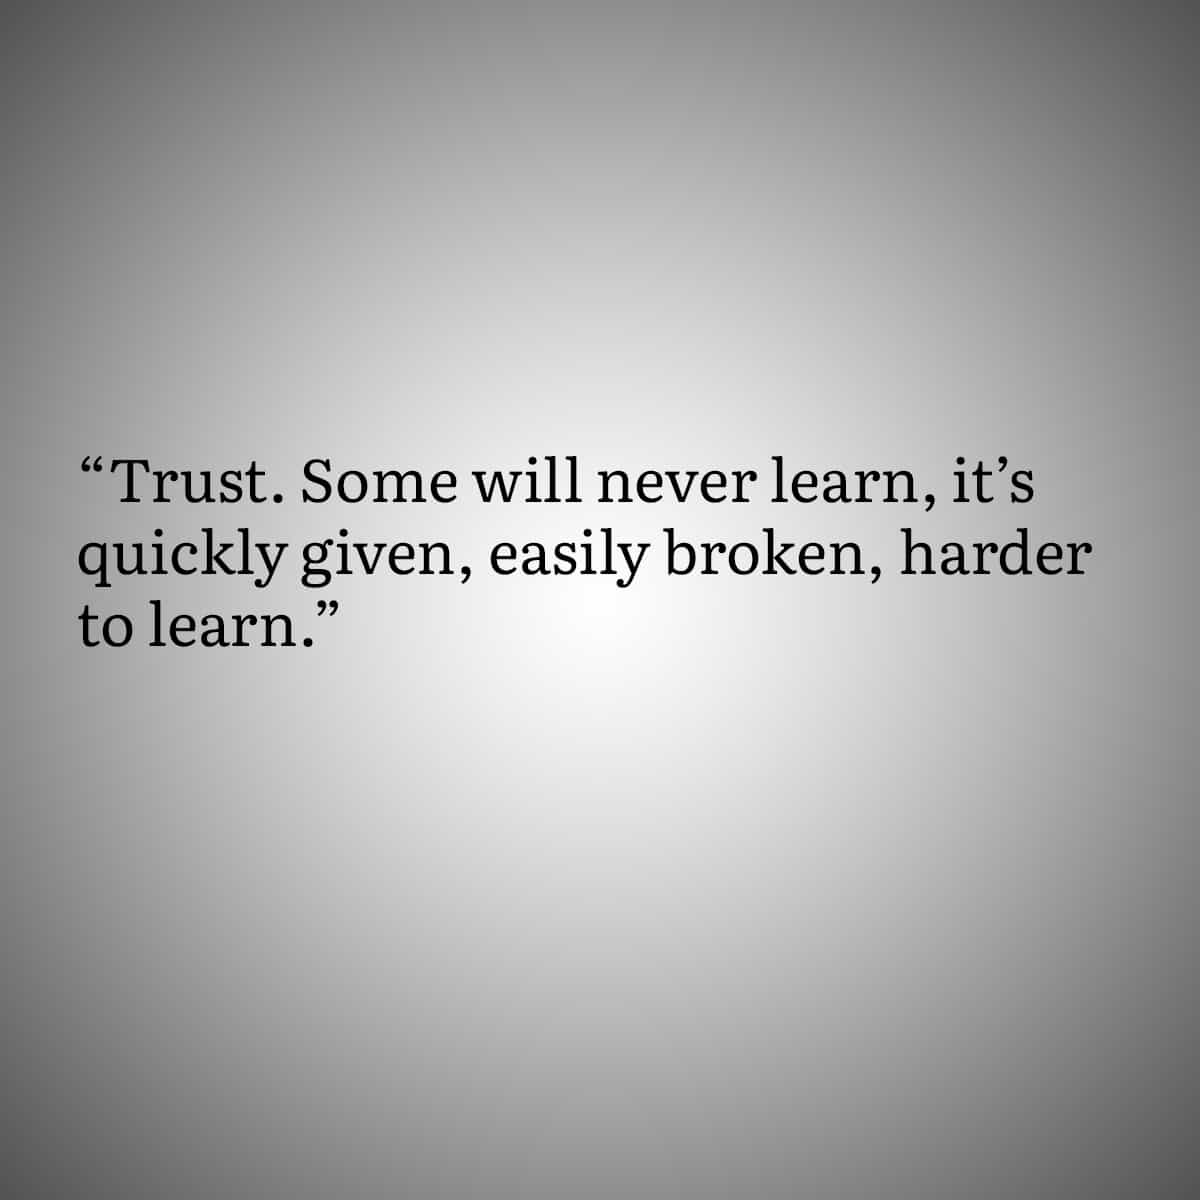 Quotes for people with Trust Issues 4: Trust. Some will never learn, it's quickly given, easily broken, harder to learn.